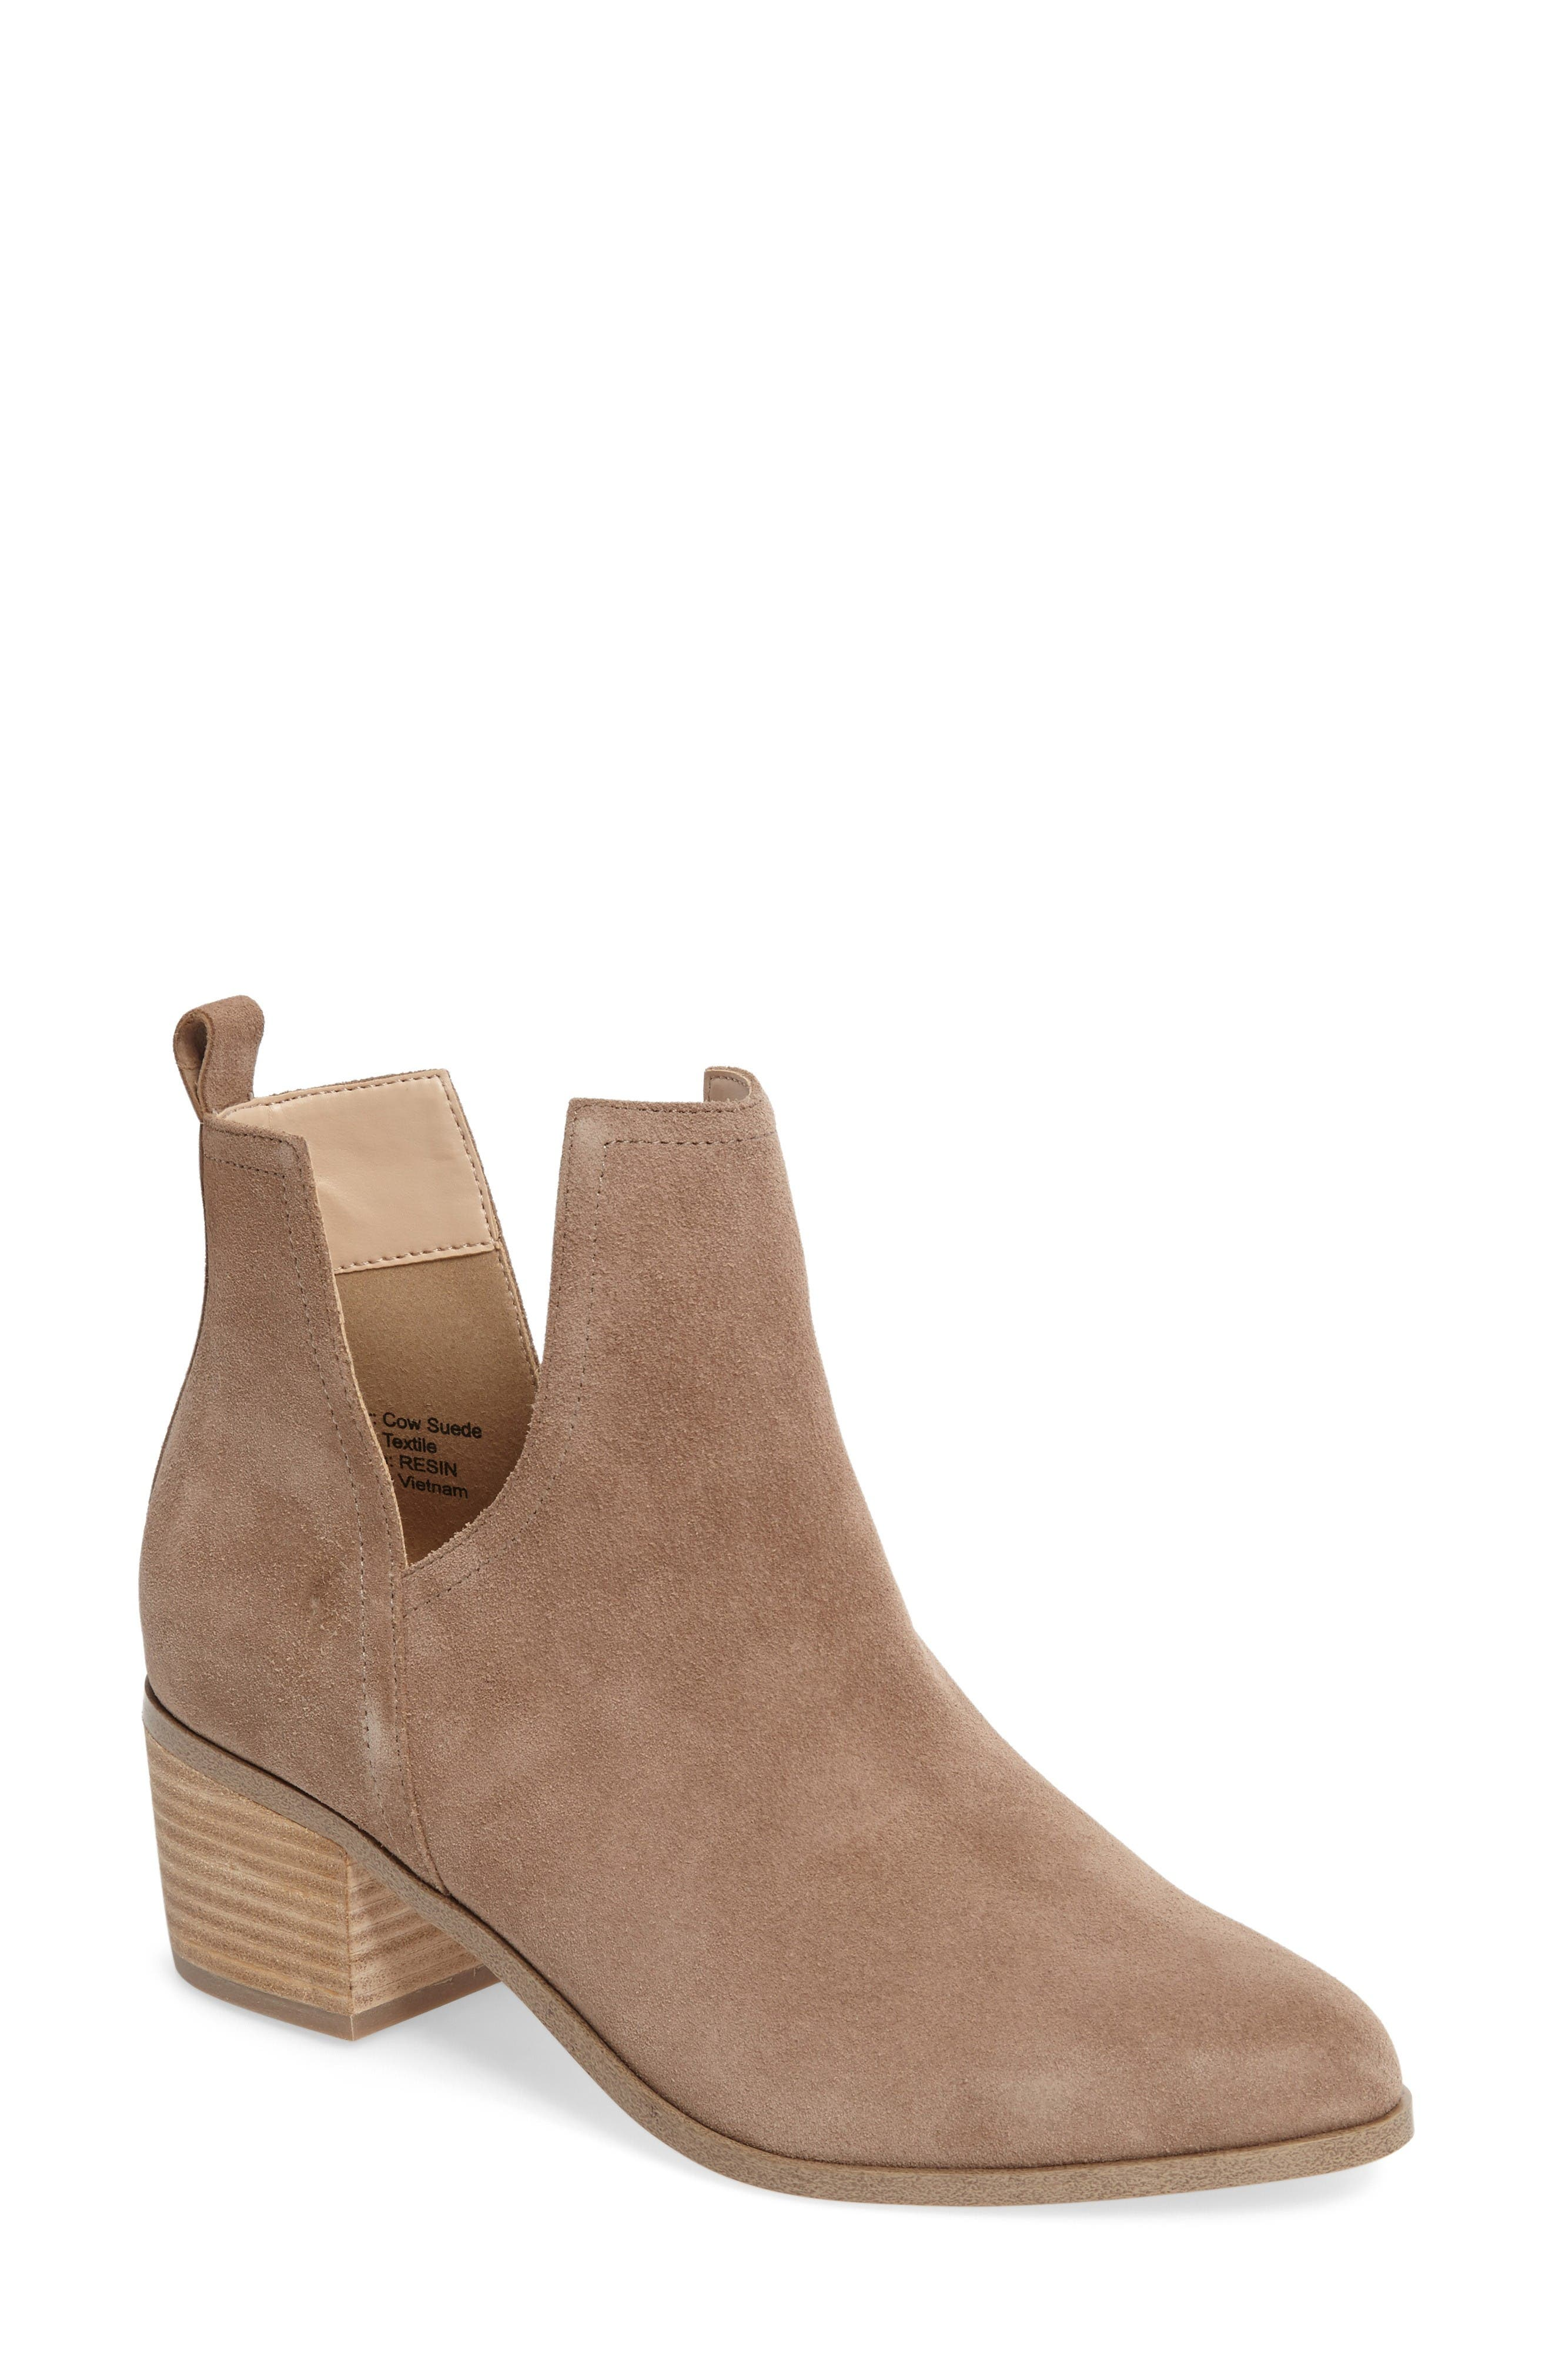 Madrid Bootie,                         Main,                         color, Sand Suede